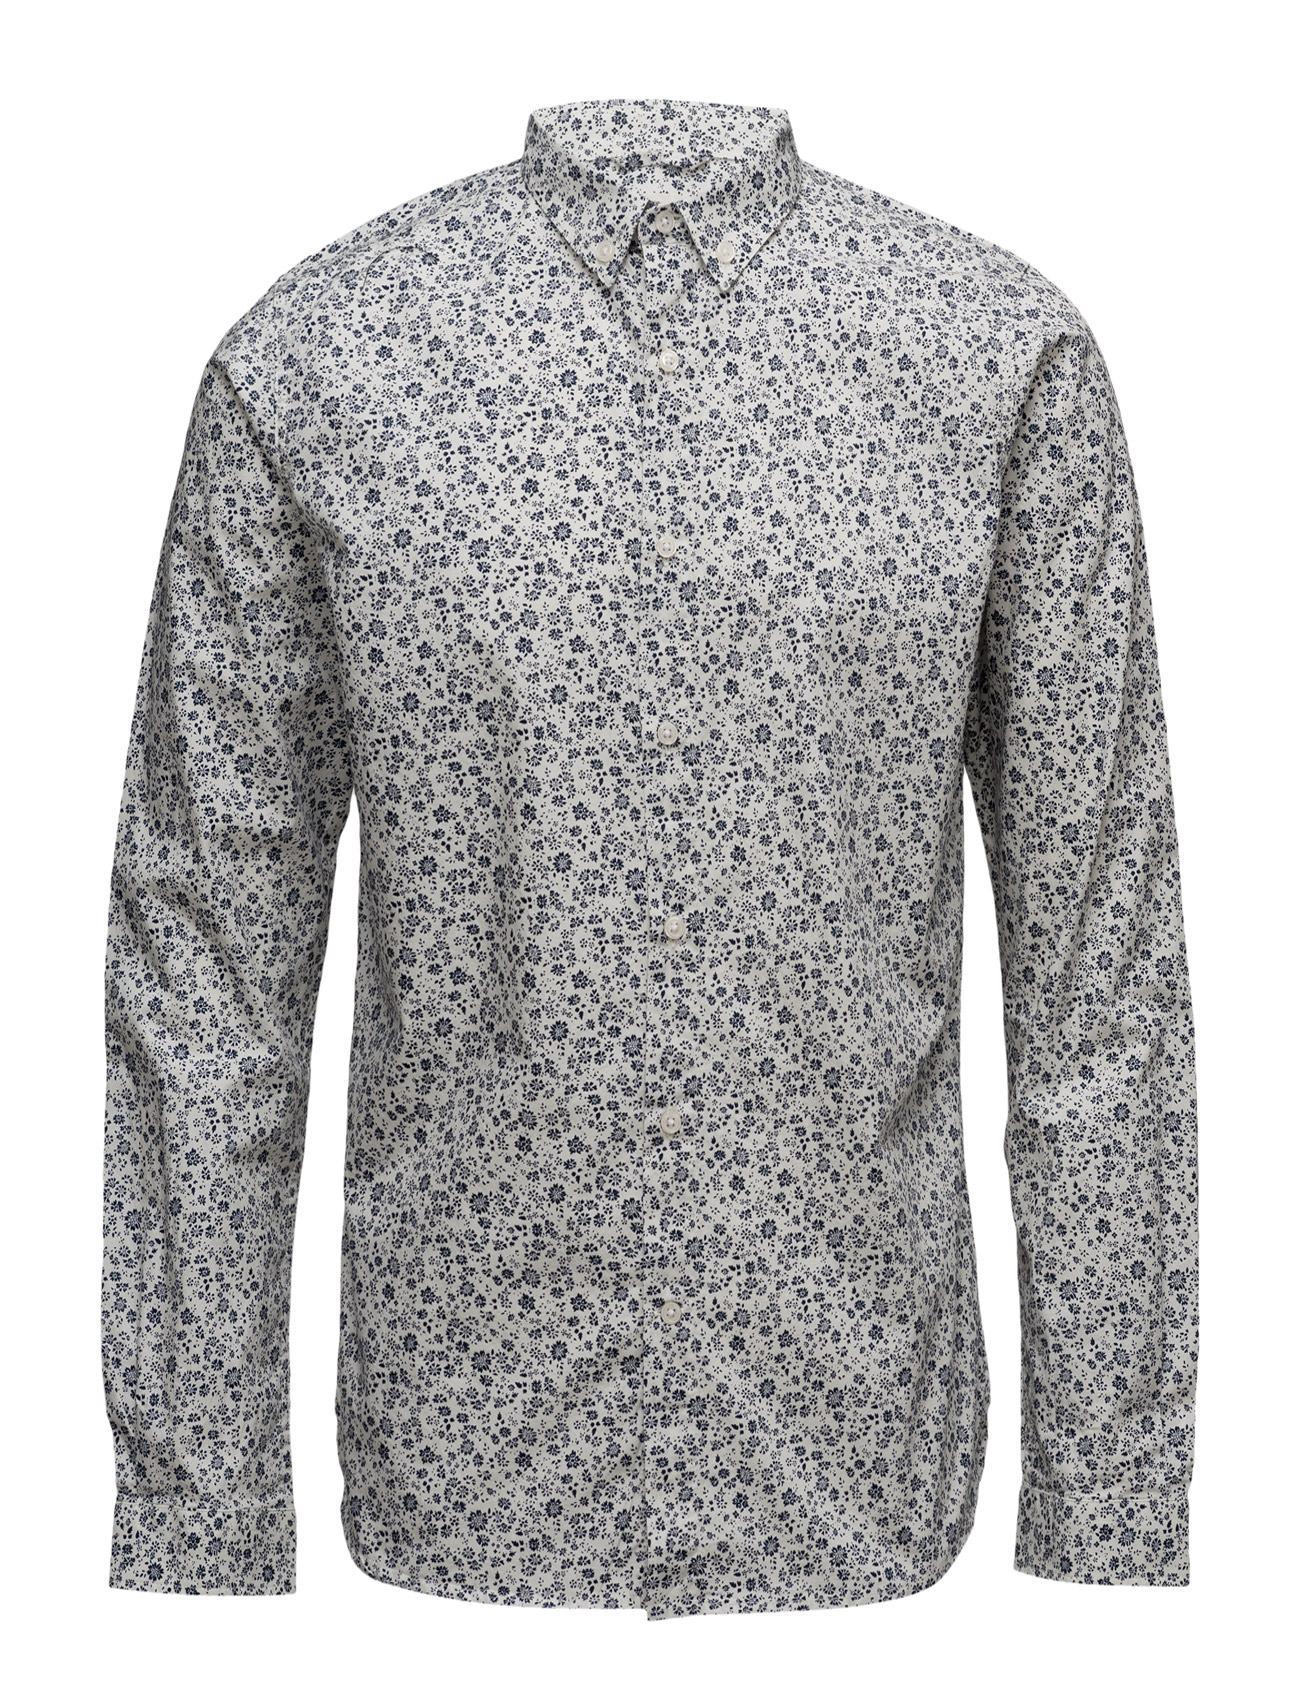 Poplin Shirt W/All Over Flower Prin Knowledge Cotton Apparel Casual sko til Mænd i